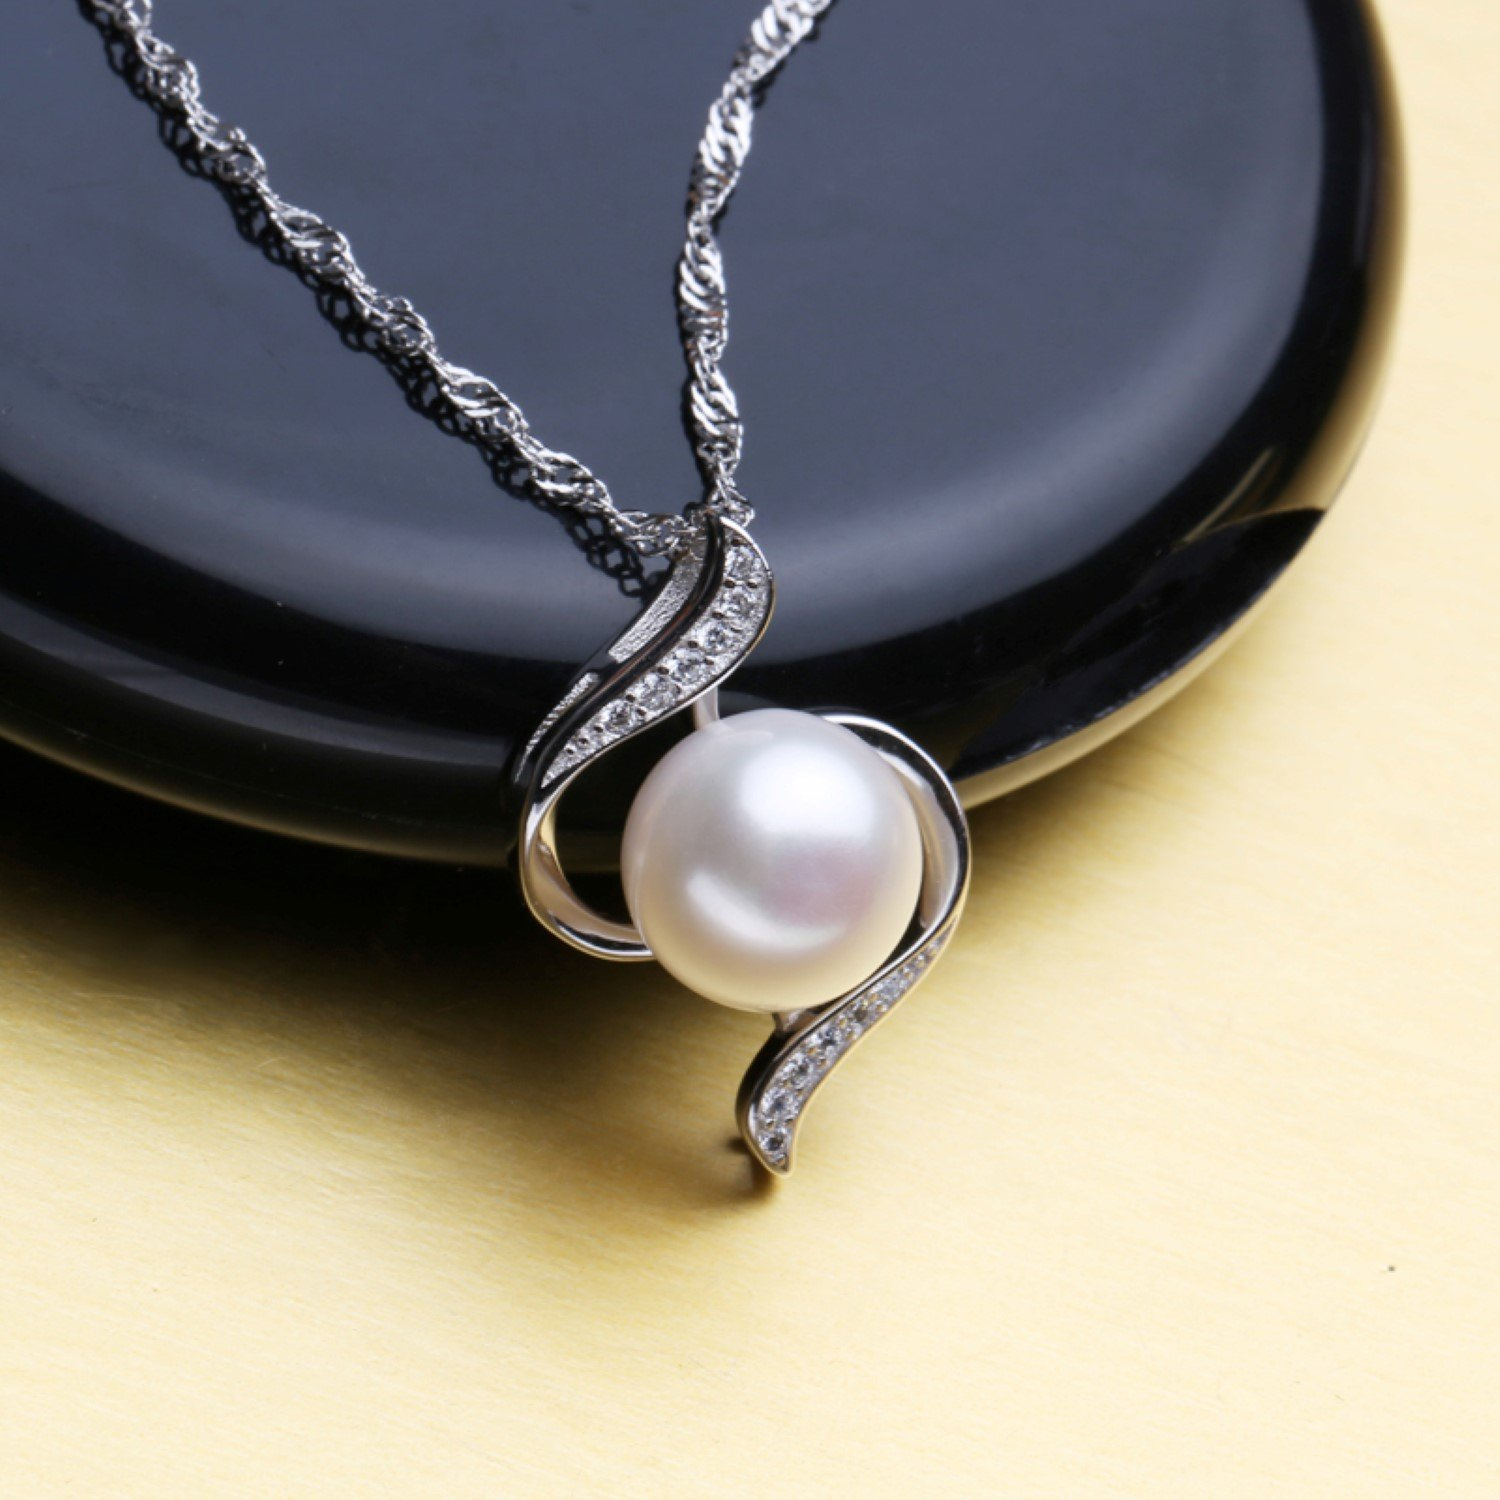 CS-DB Jewelry Silver Pearl Best Chain Charm Pendants Necklaces